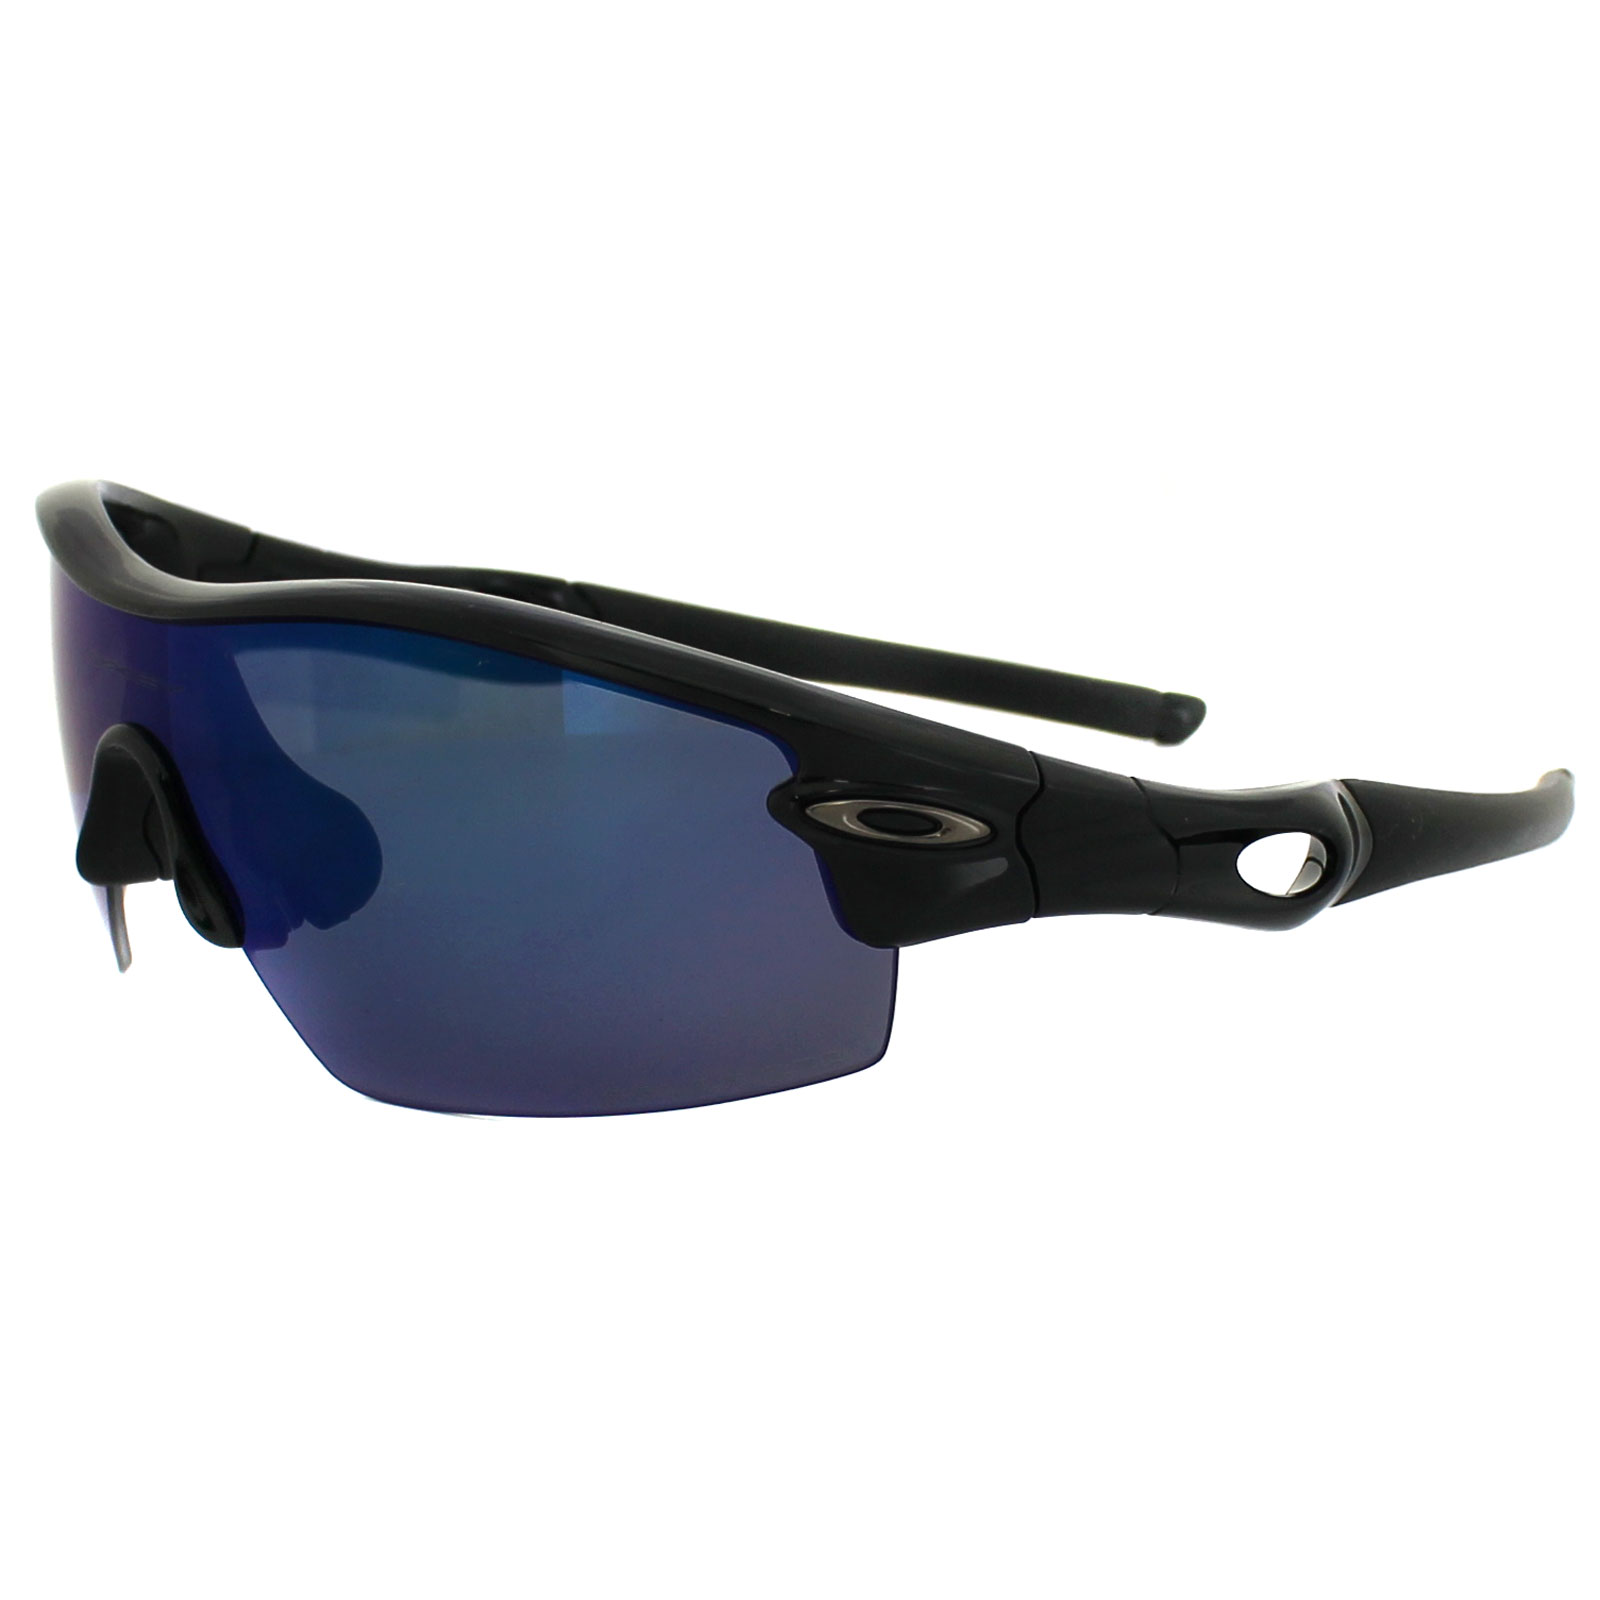 51f19fd65c Cheap Oakley Radar Pitch Sunglasses - Discounted Sunglasses